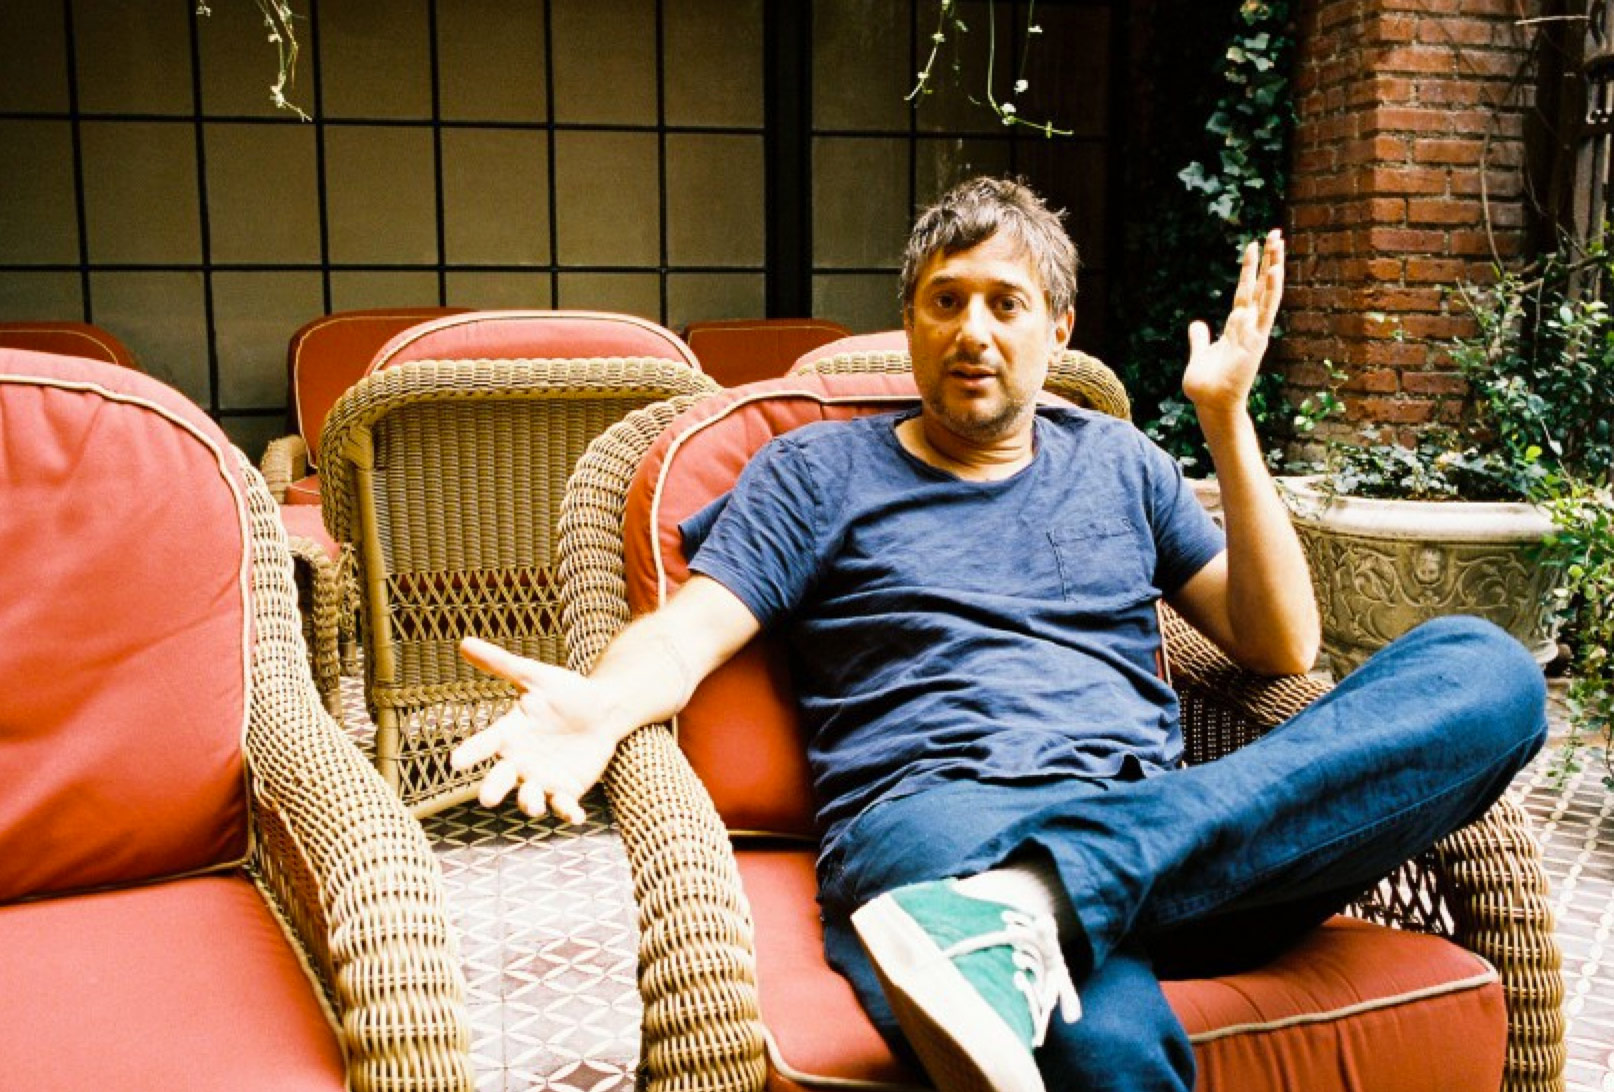 harmony korine artharmony korine interview, harmony korine x vans, harmony korine gummo, harmony korine skate, harmony korine photography, harmony korine twitter, harmony korine supreme, harmony korine music video, harmony korine films, harmony korine die antwoord, harmony korine mp3, harmony korine director, harmony korine lyrics steven wilson, harmony korine art, harmony korine net worth, harmony korine mubi, harmony korine reddit, harmony korine vincent gallo, harmony korine wiki, harmony korine movies